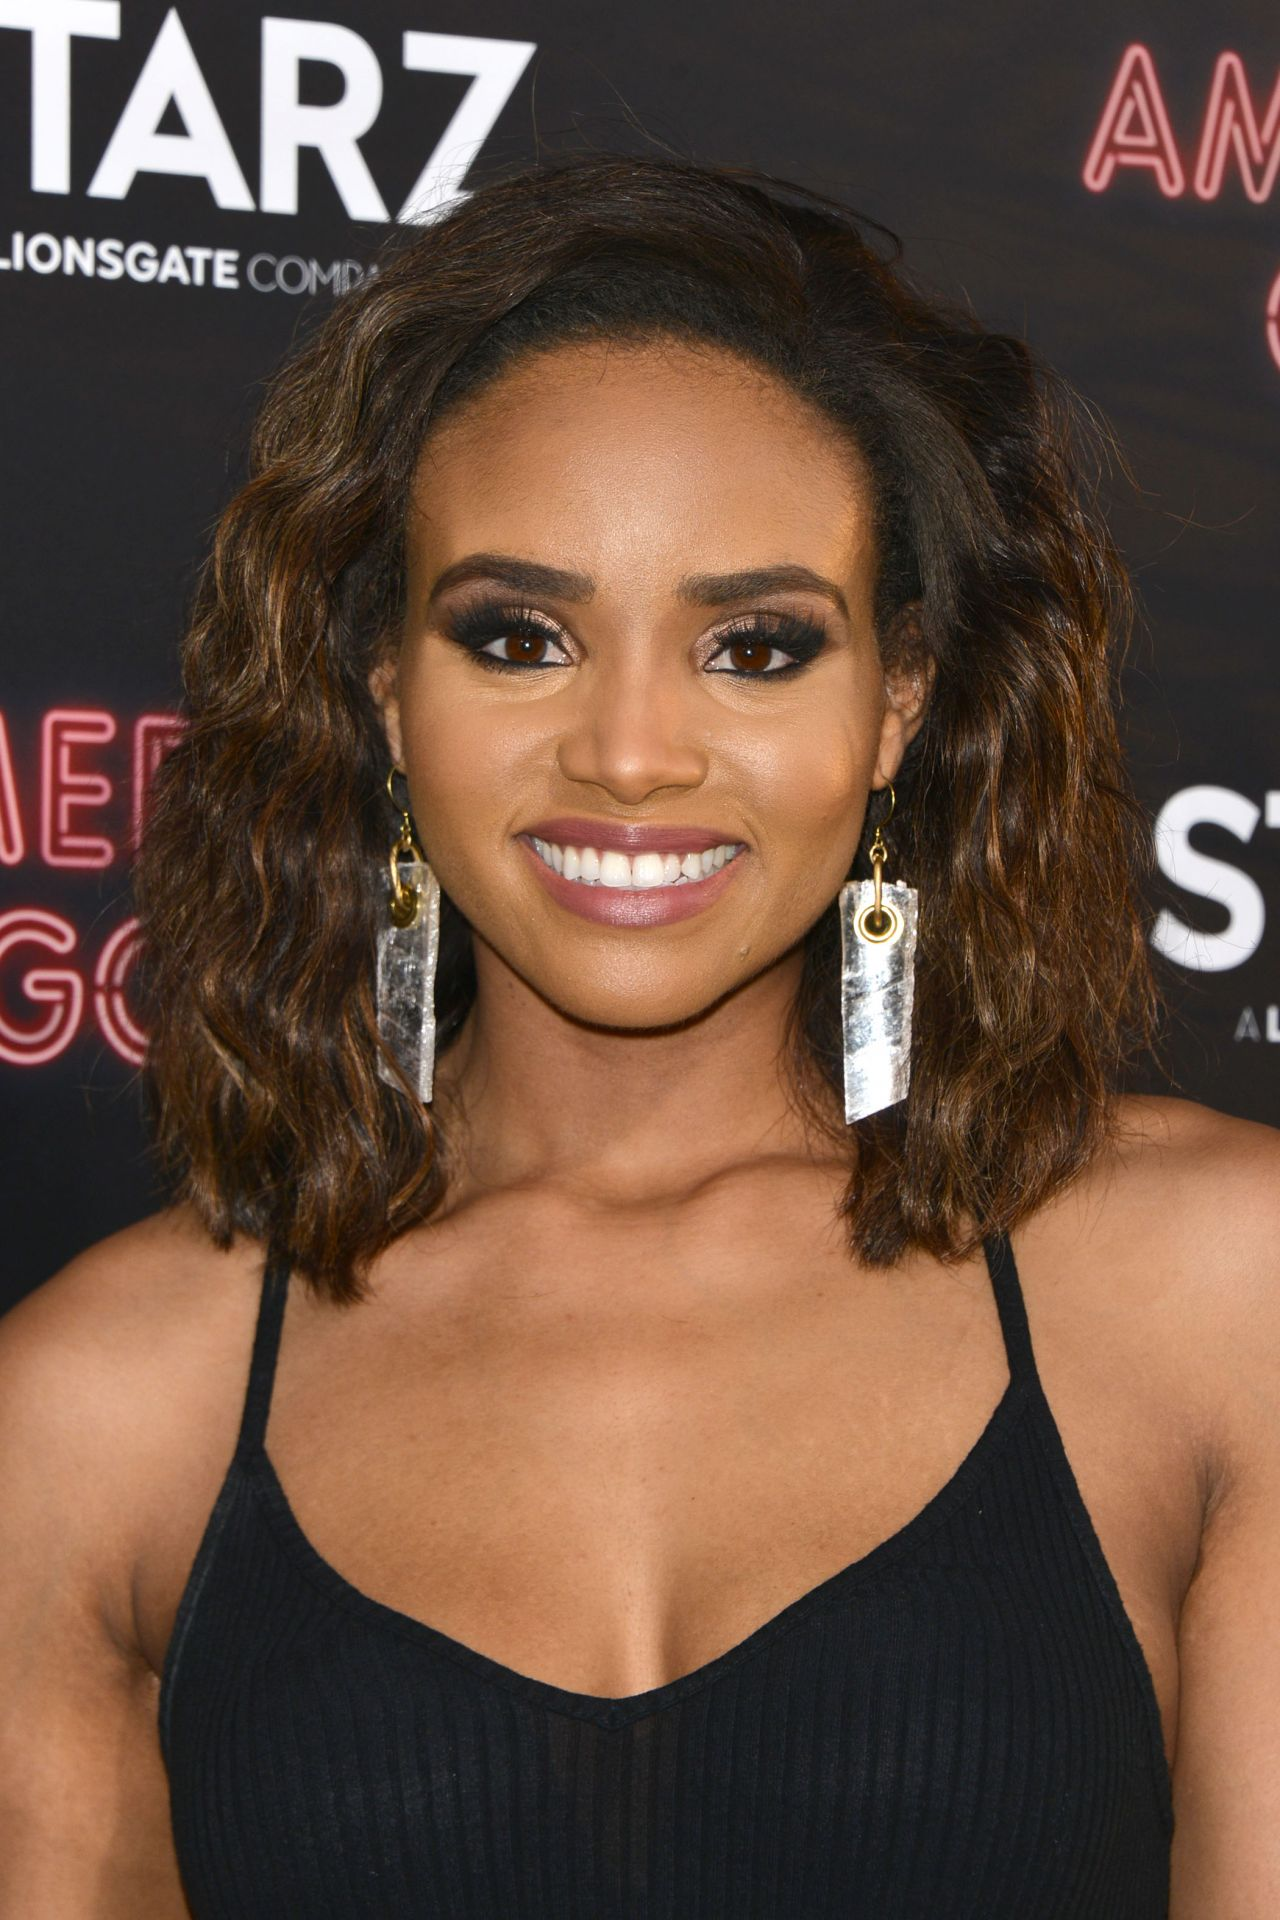 Meagan Tandy nude (48 photos) Gallery, Instagram, cameltoe